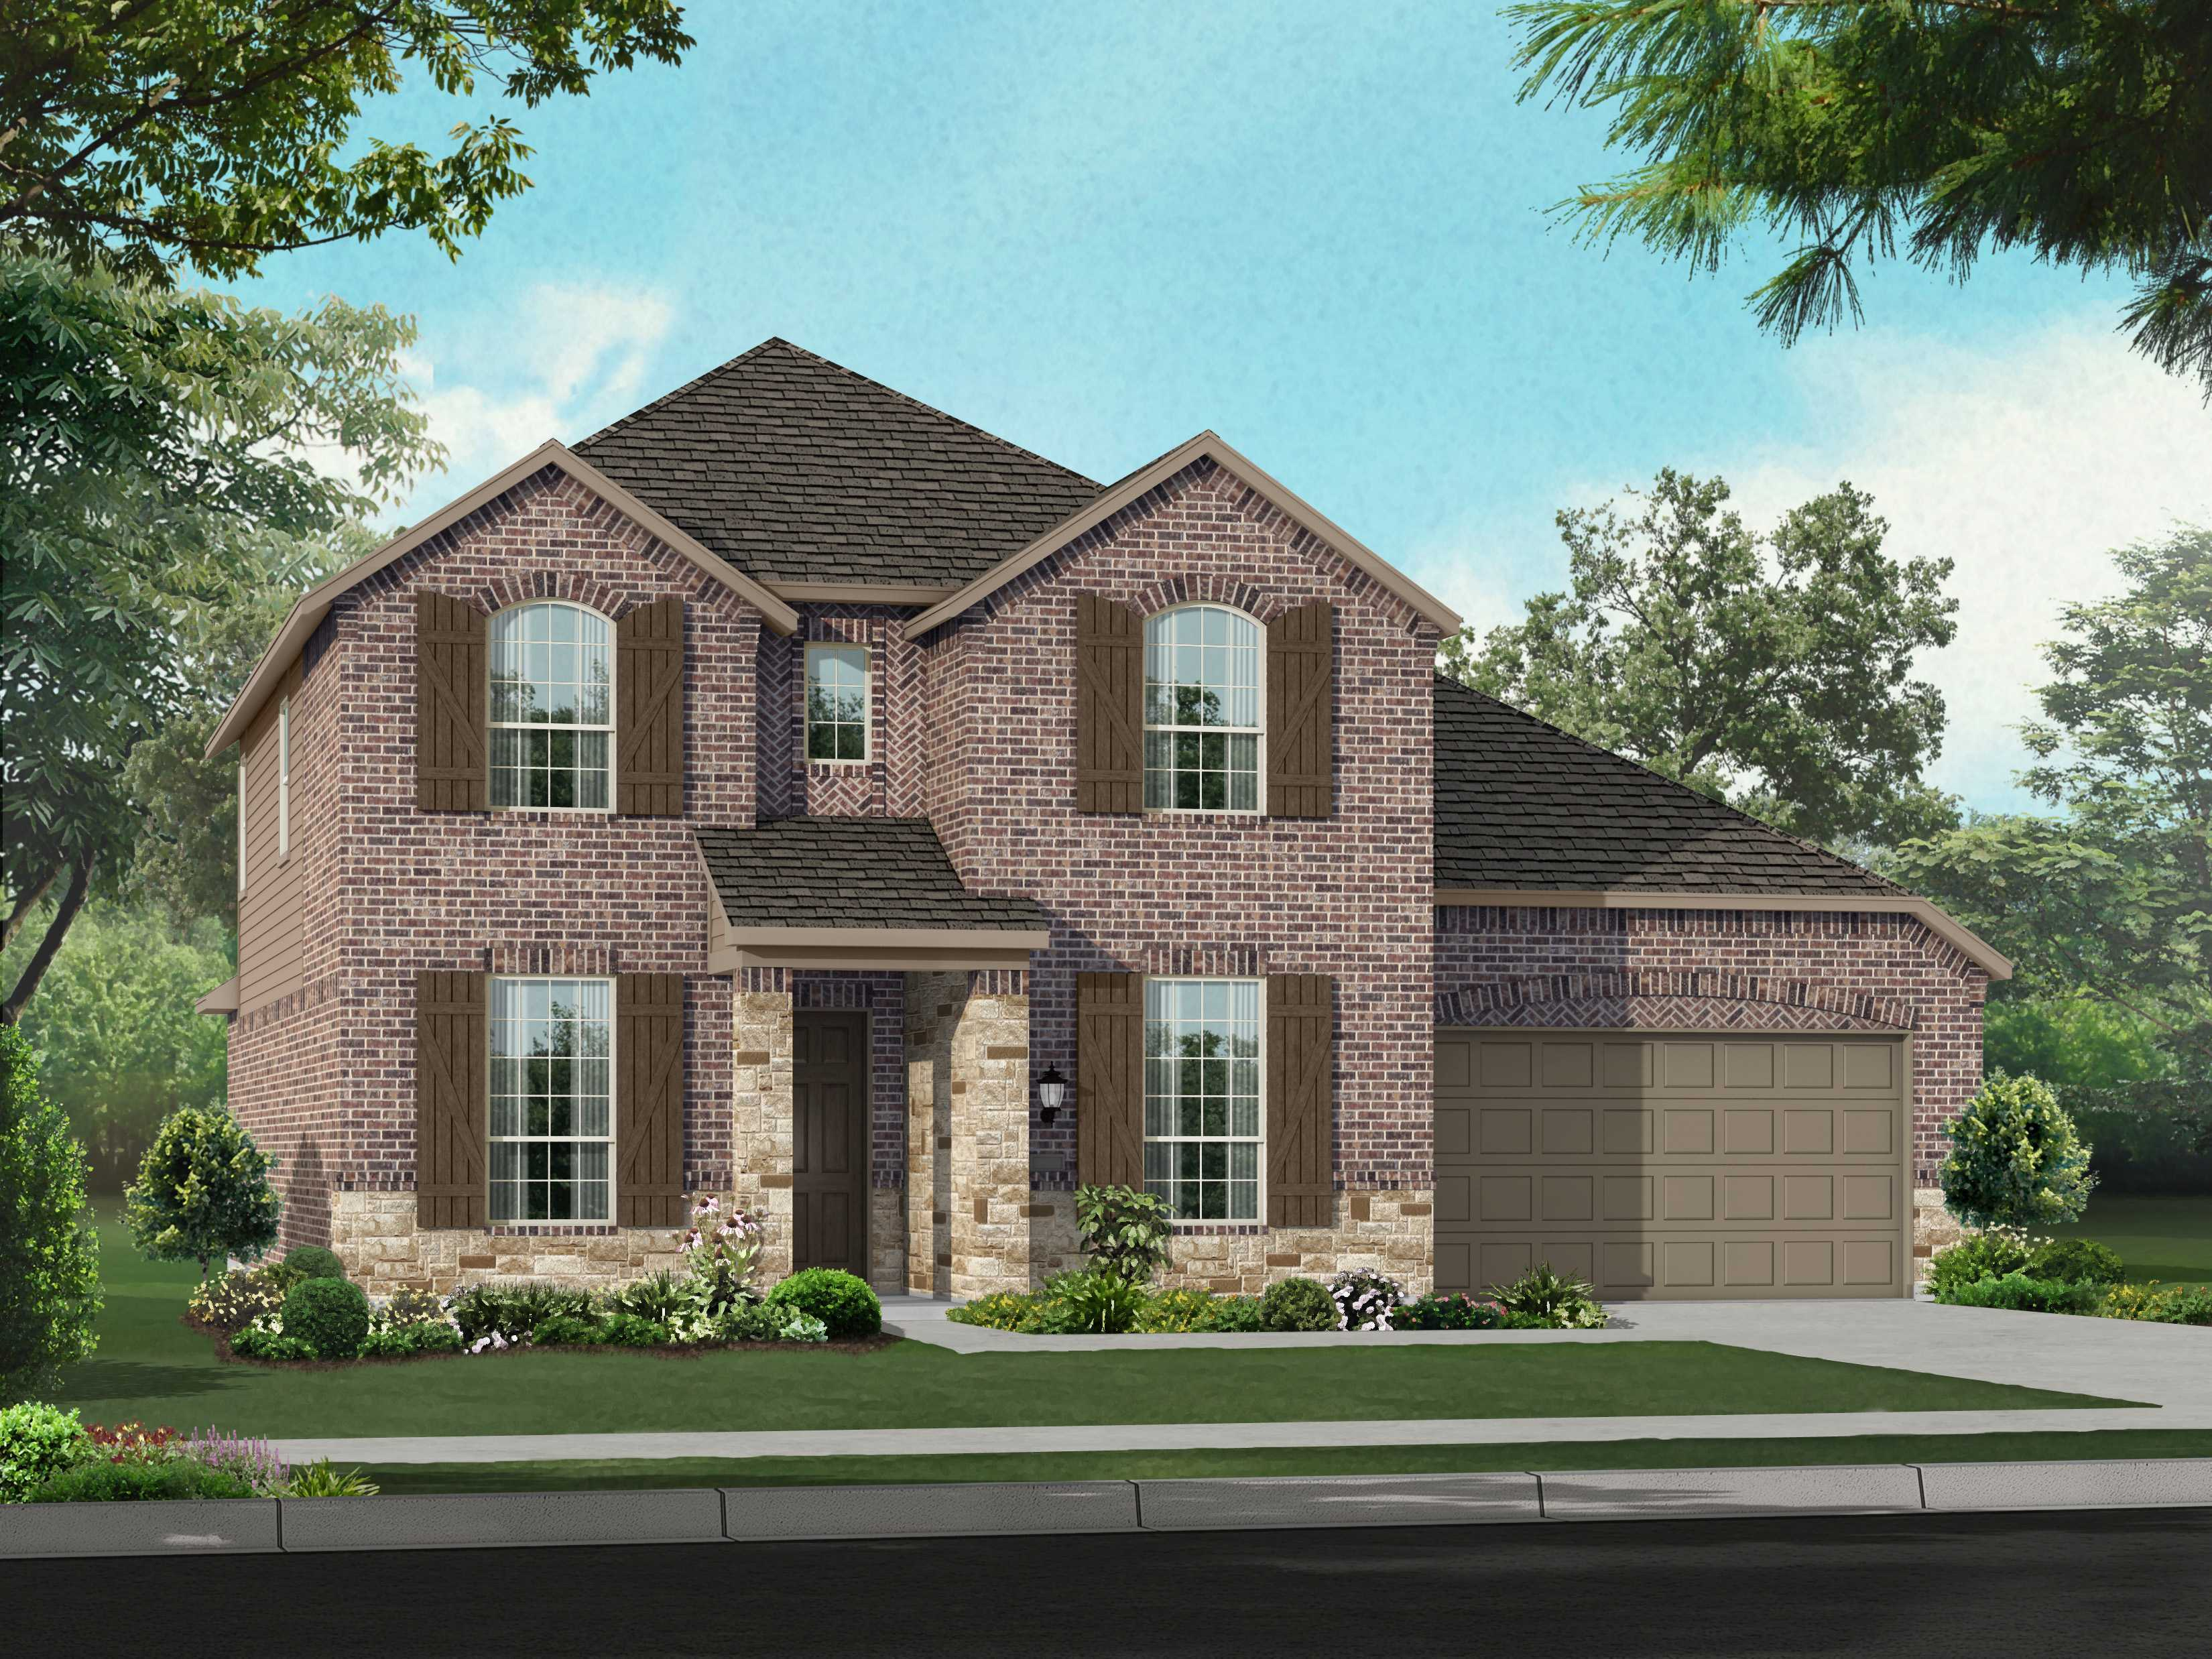 New Construction Homes & Plans In Austin, Tx - 6,780